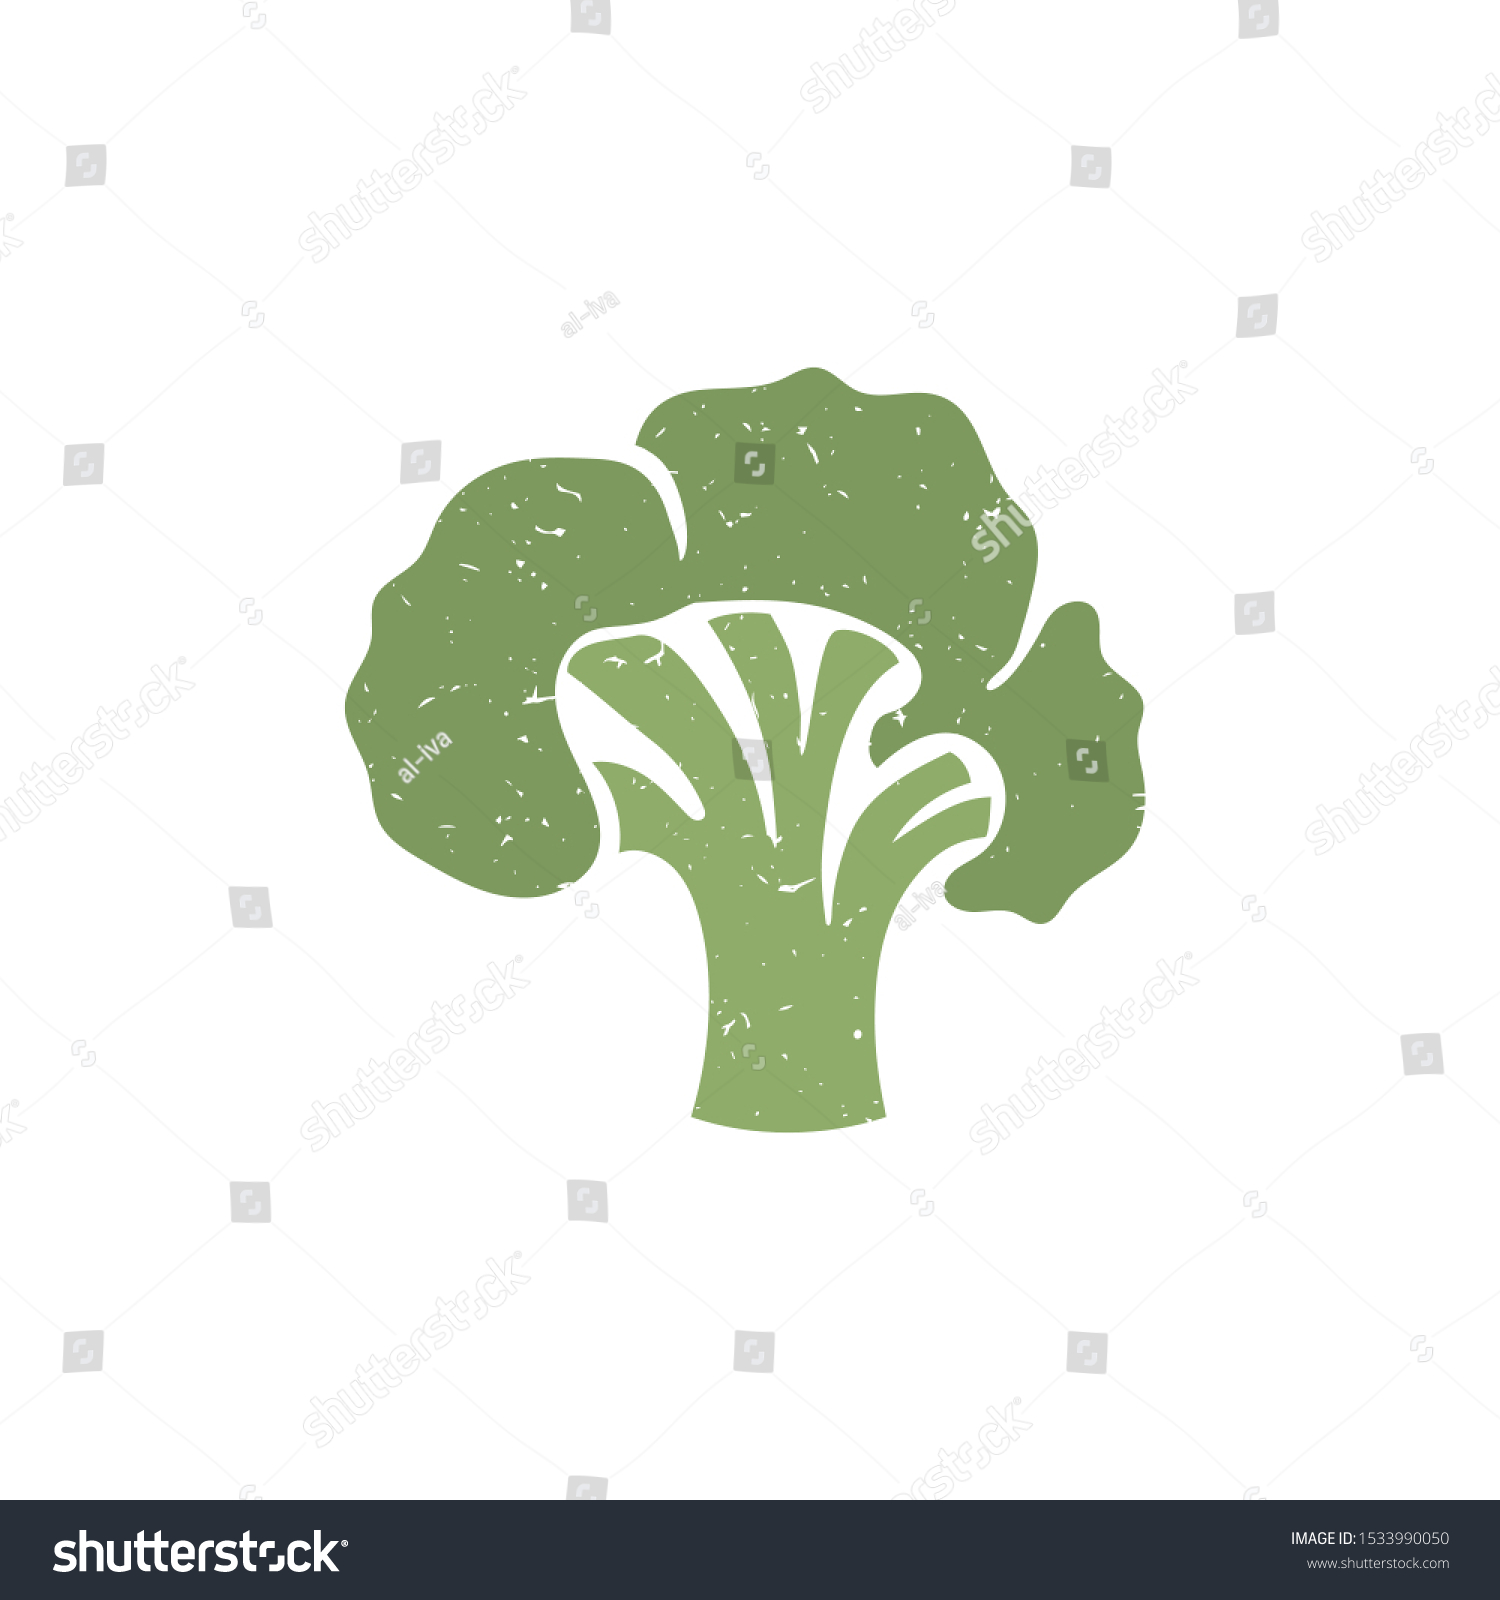 broccoli symbol isolated on transparent background stock vector royalty free 1533990050 shutterstock